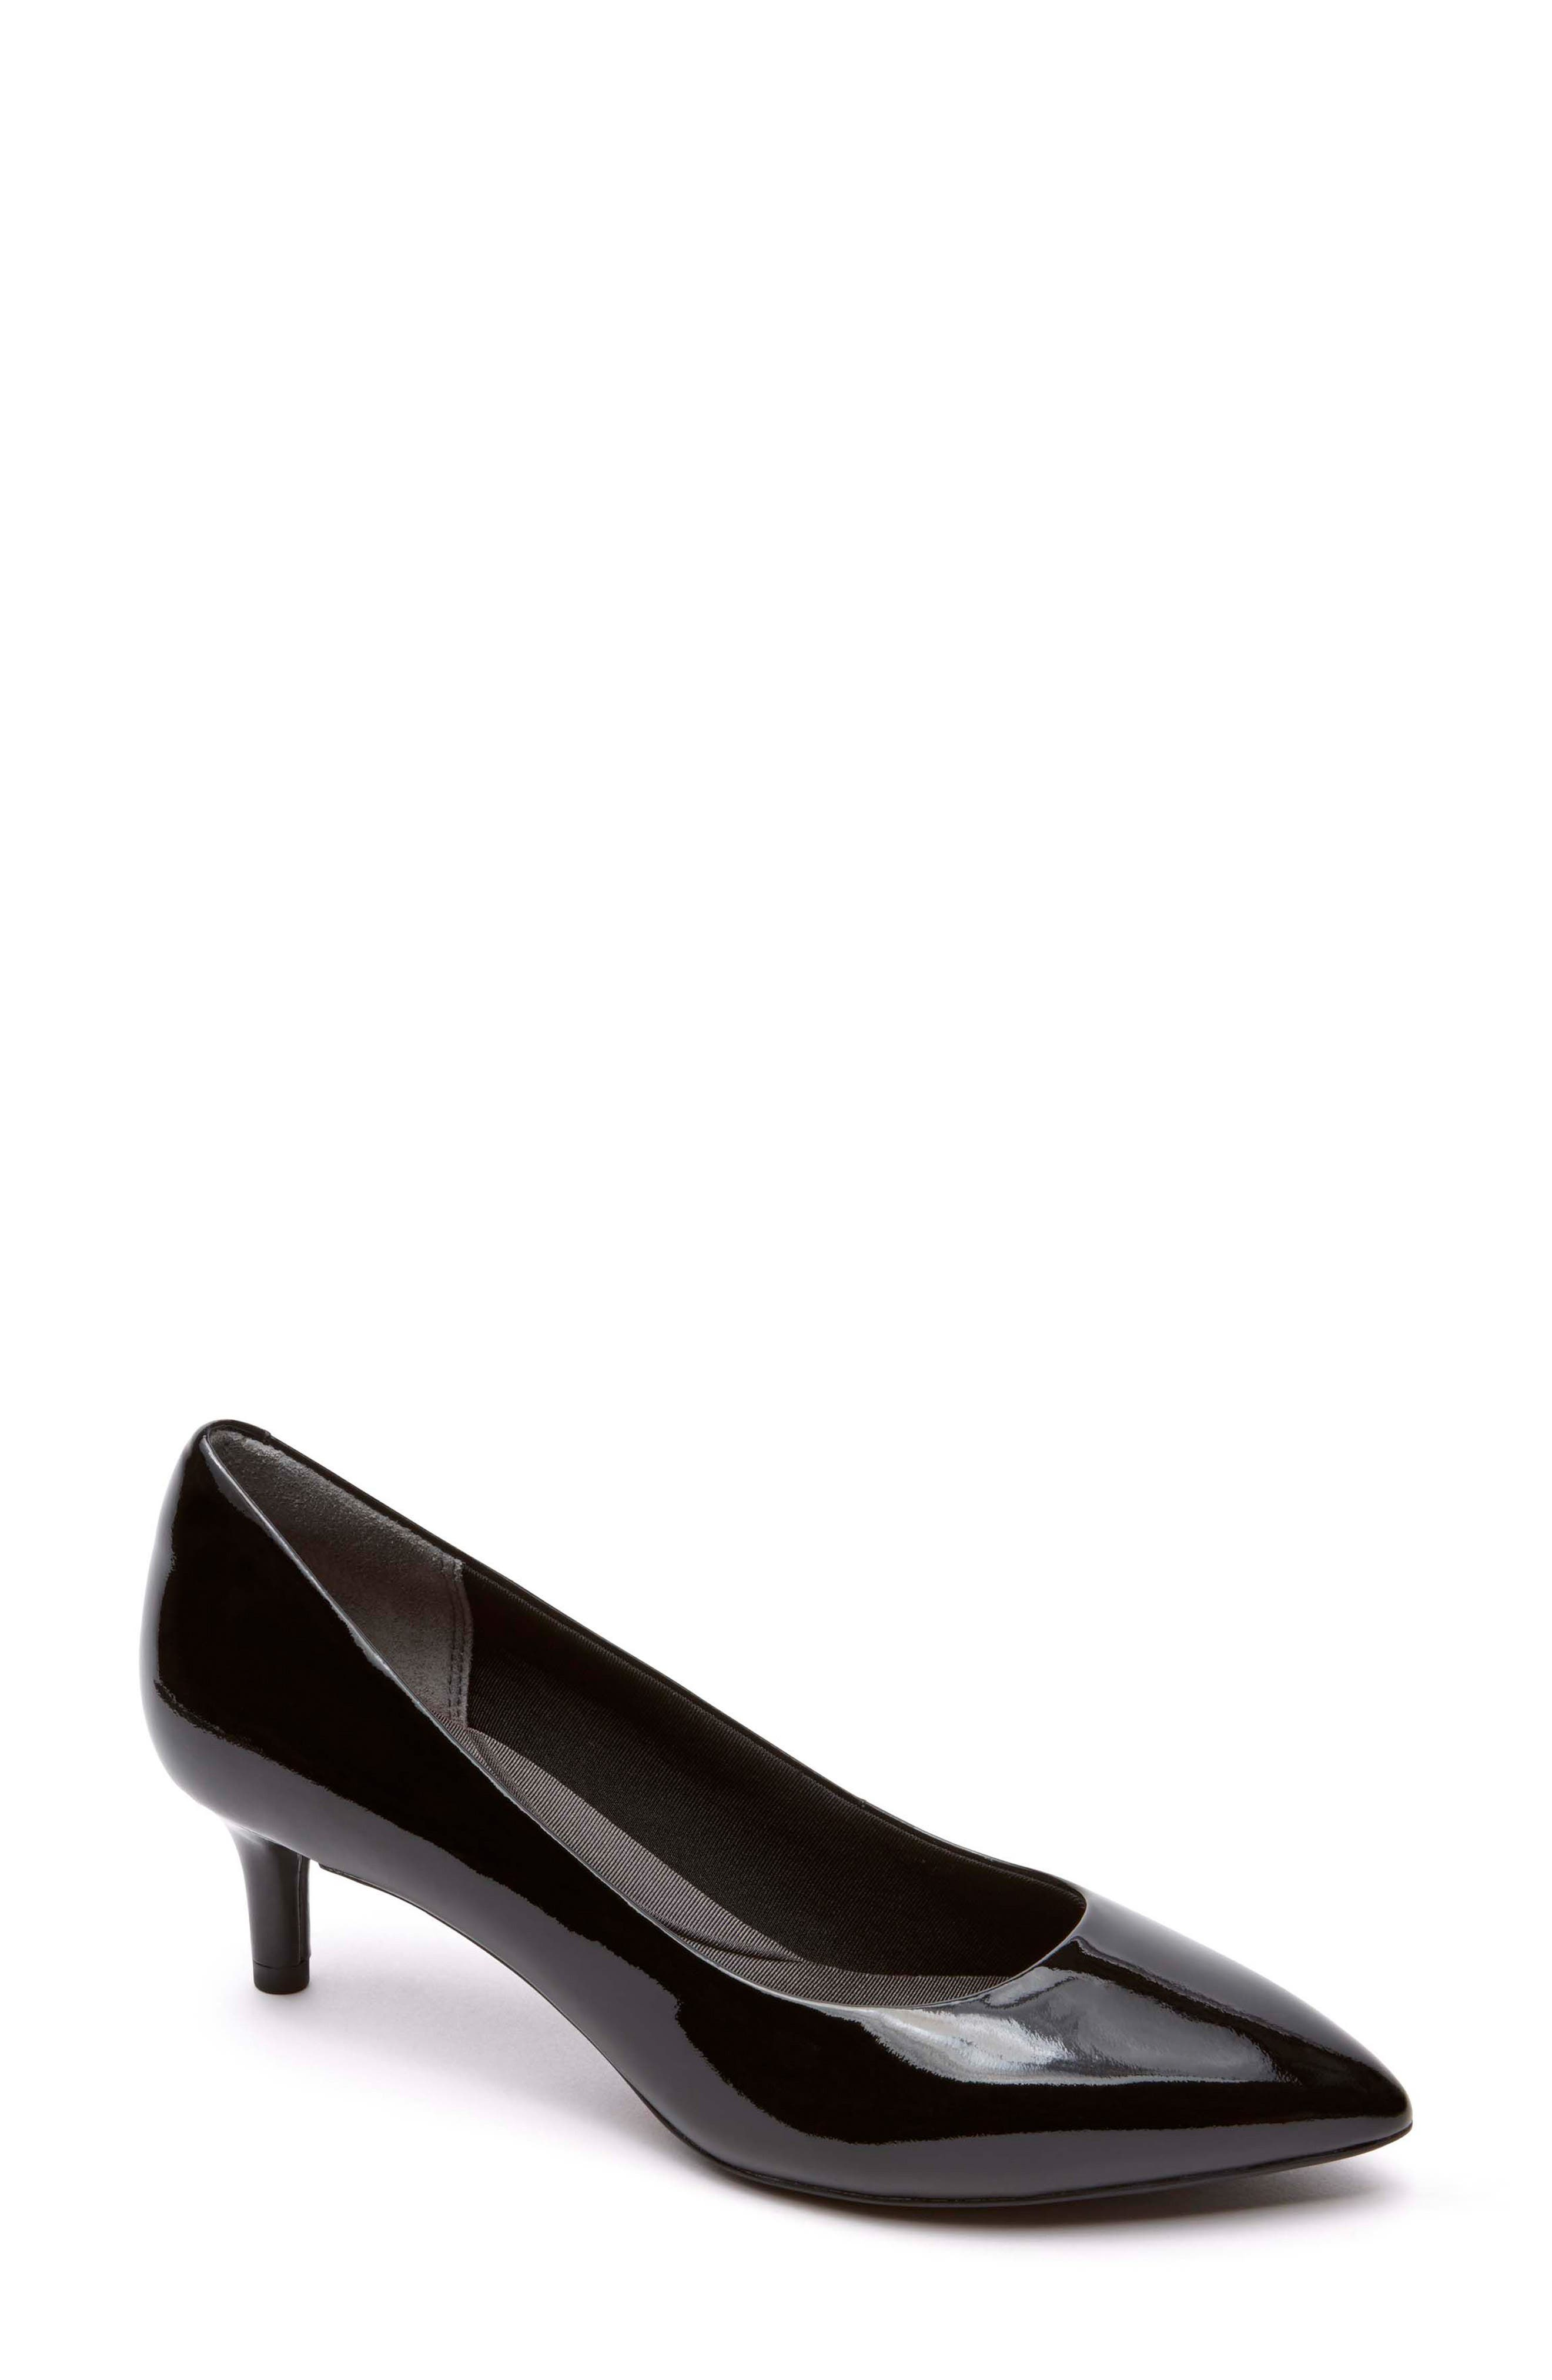 Kalila Luxe Pump,                         Main,                         color, BLACK PATENT LEATHER